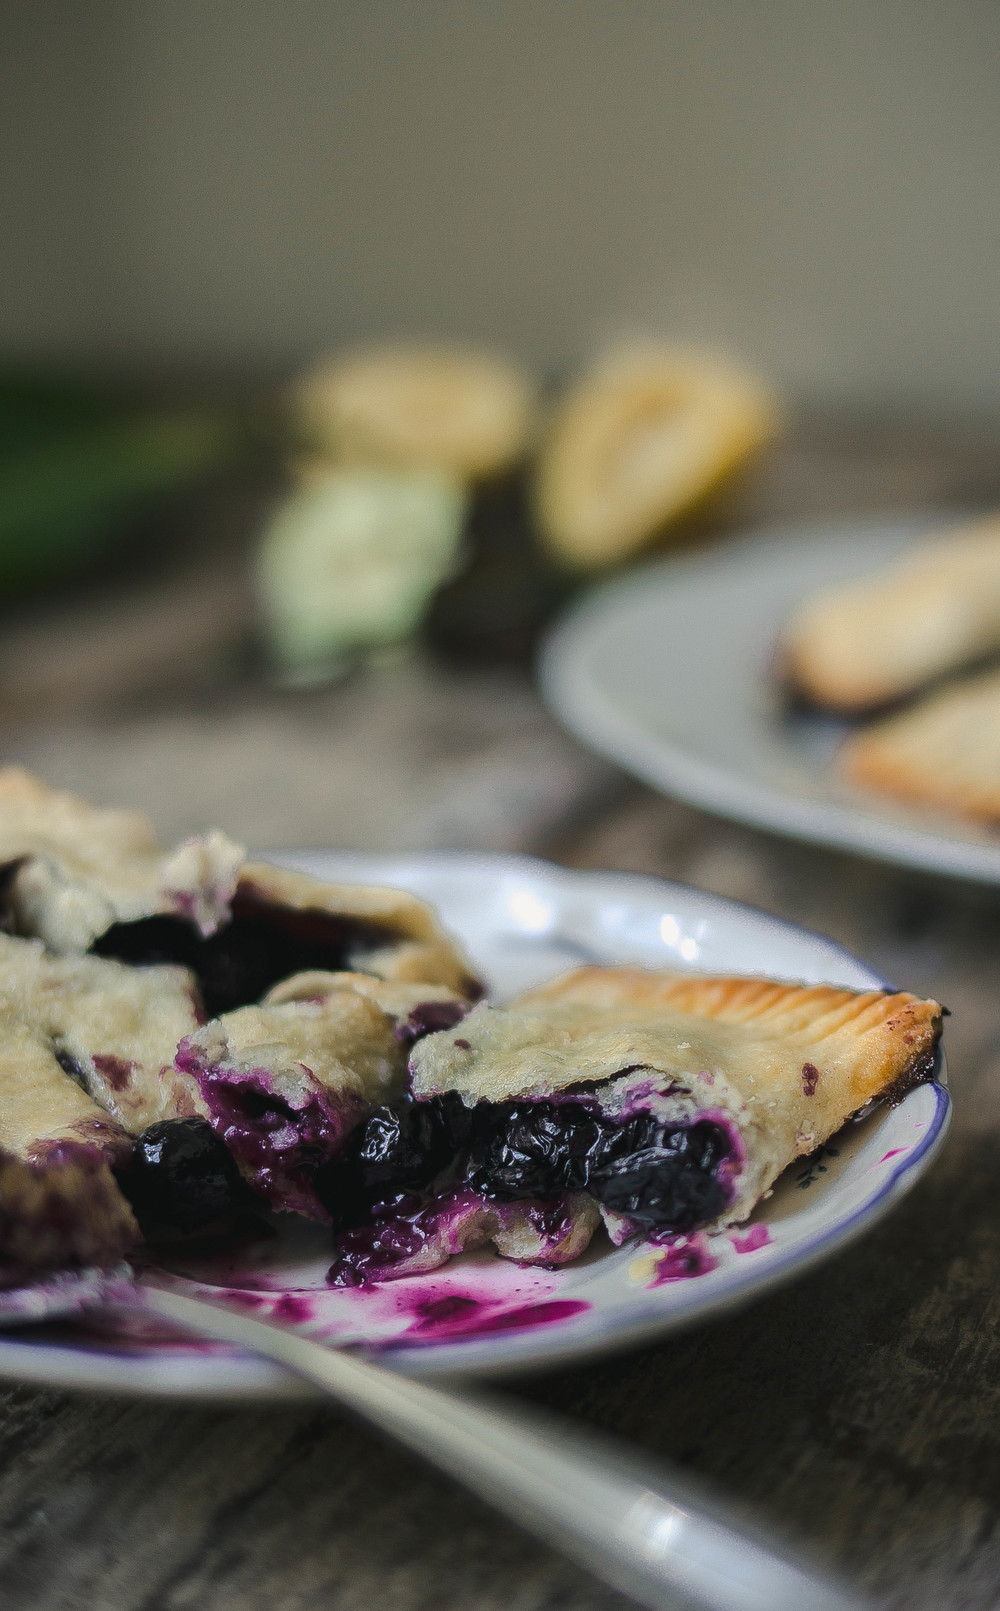 Blueberry cheddar handpies with a flaky and tender sourcream crust | from scratch, mostly